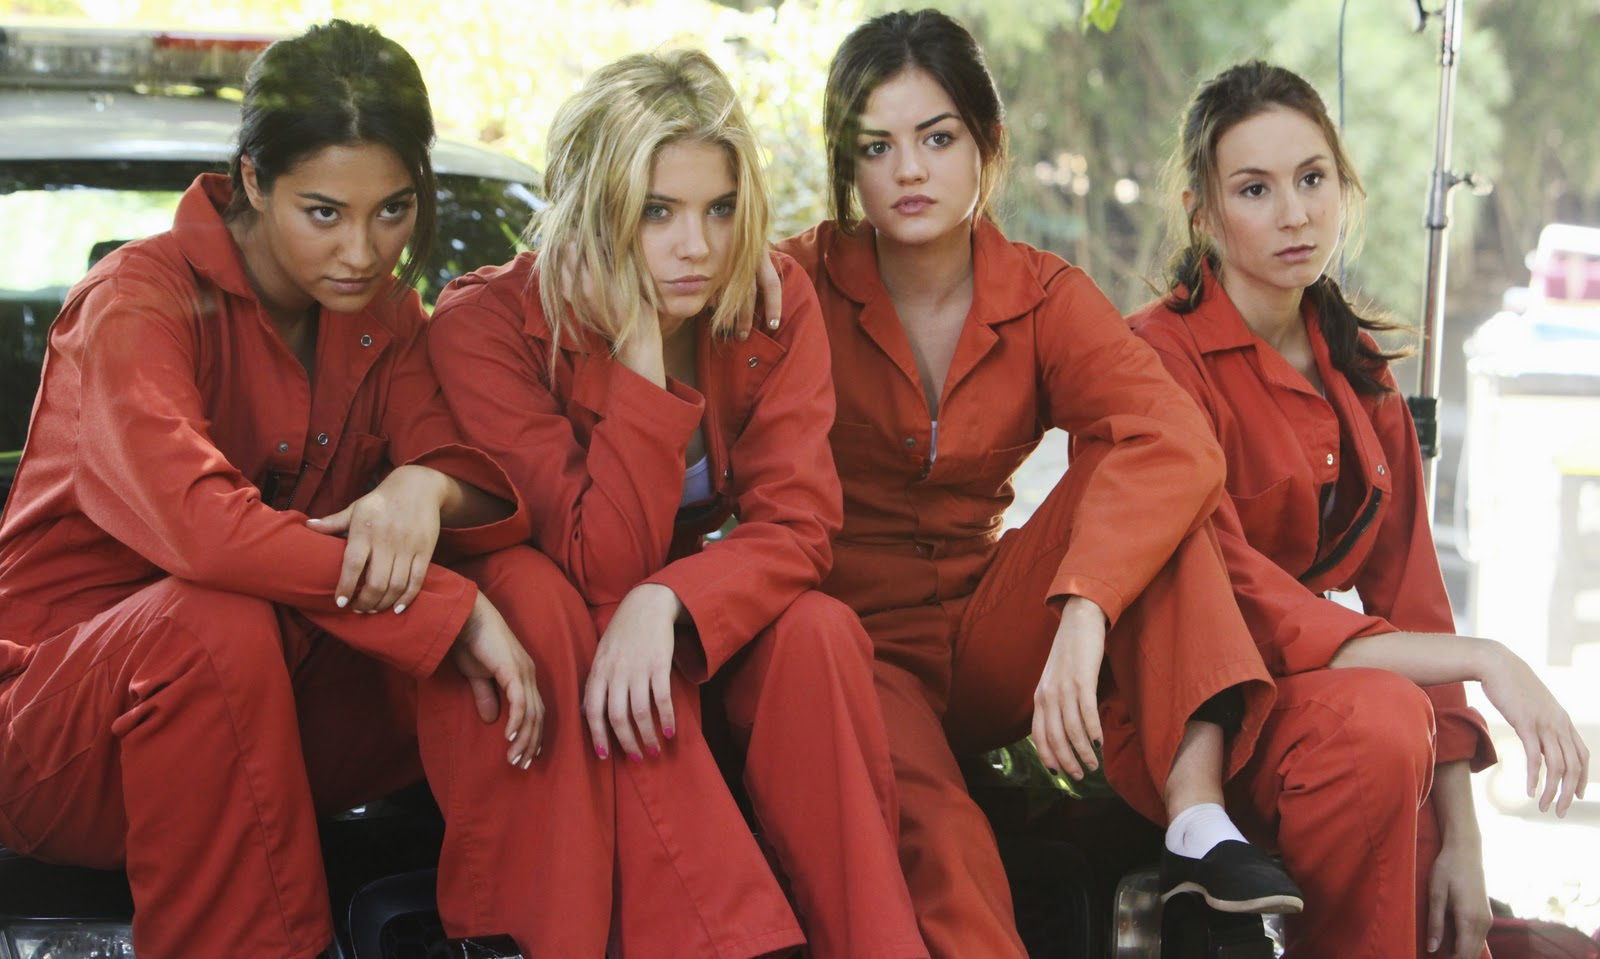 Pretty little liars returns jan 2nd with winter premiere